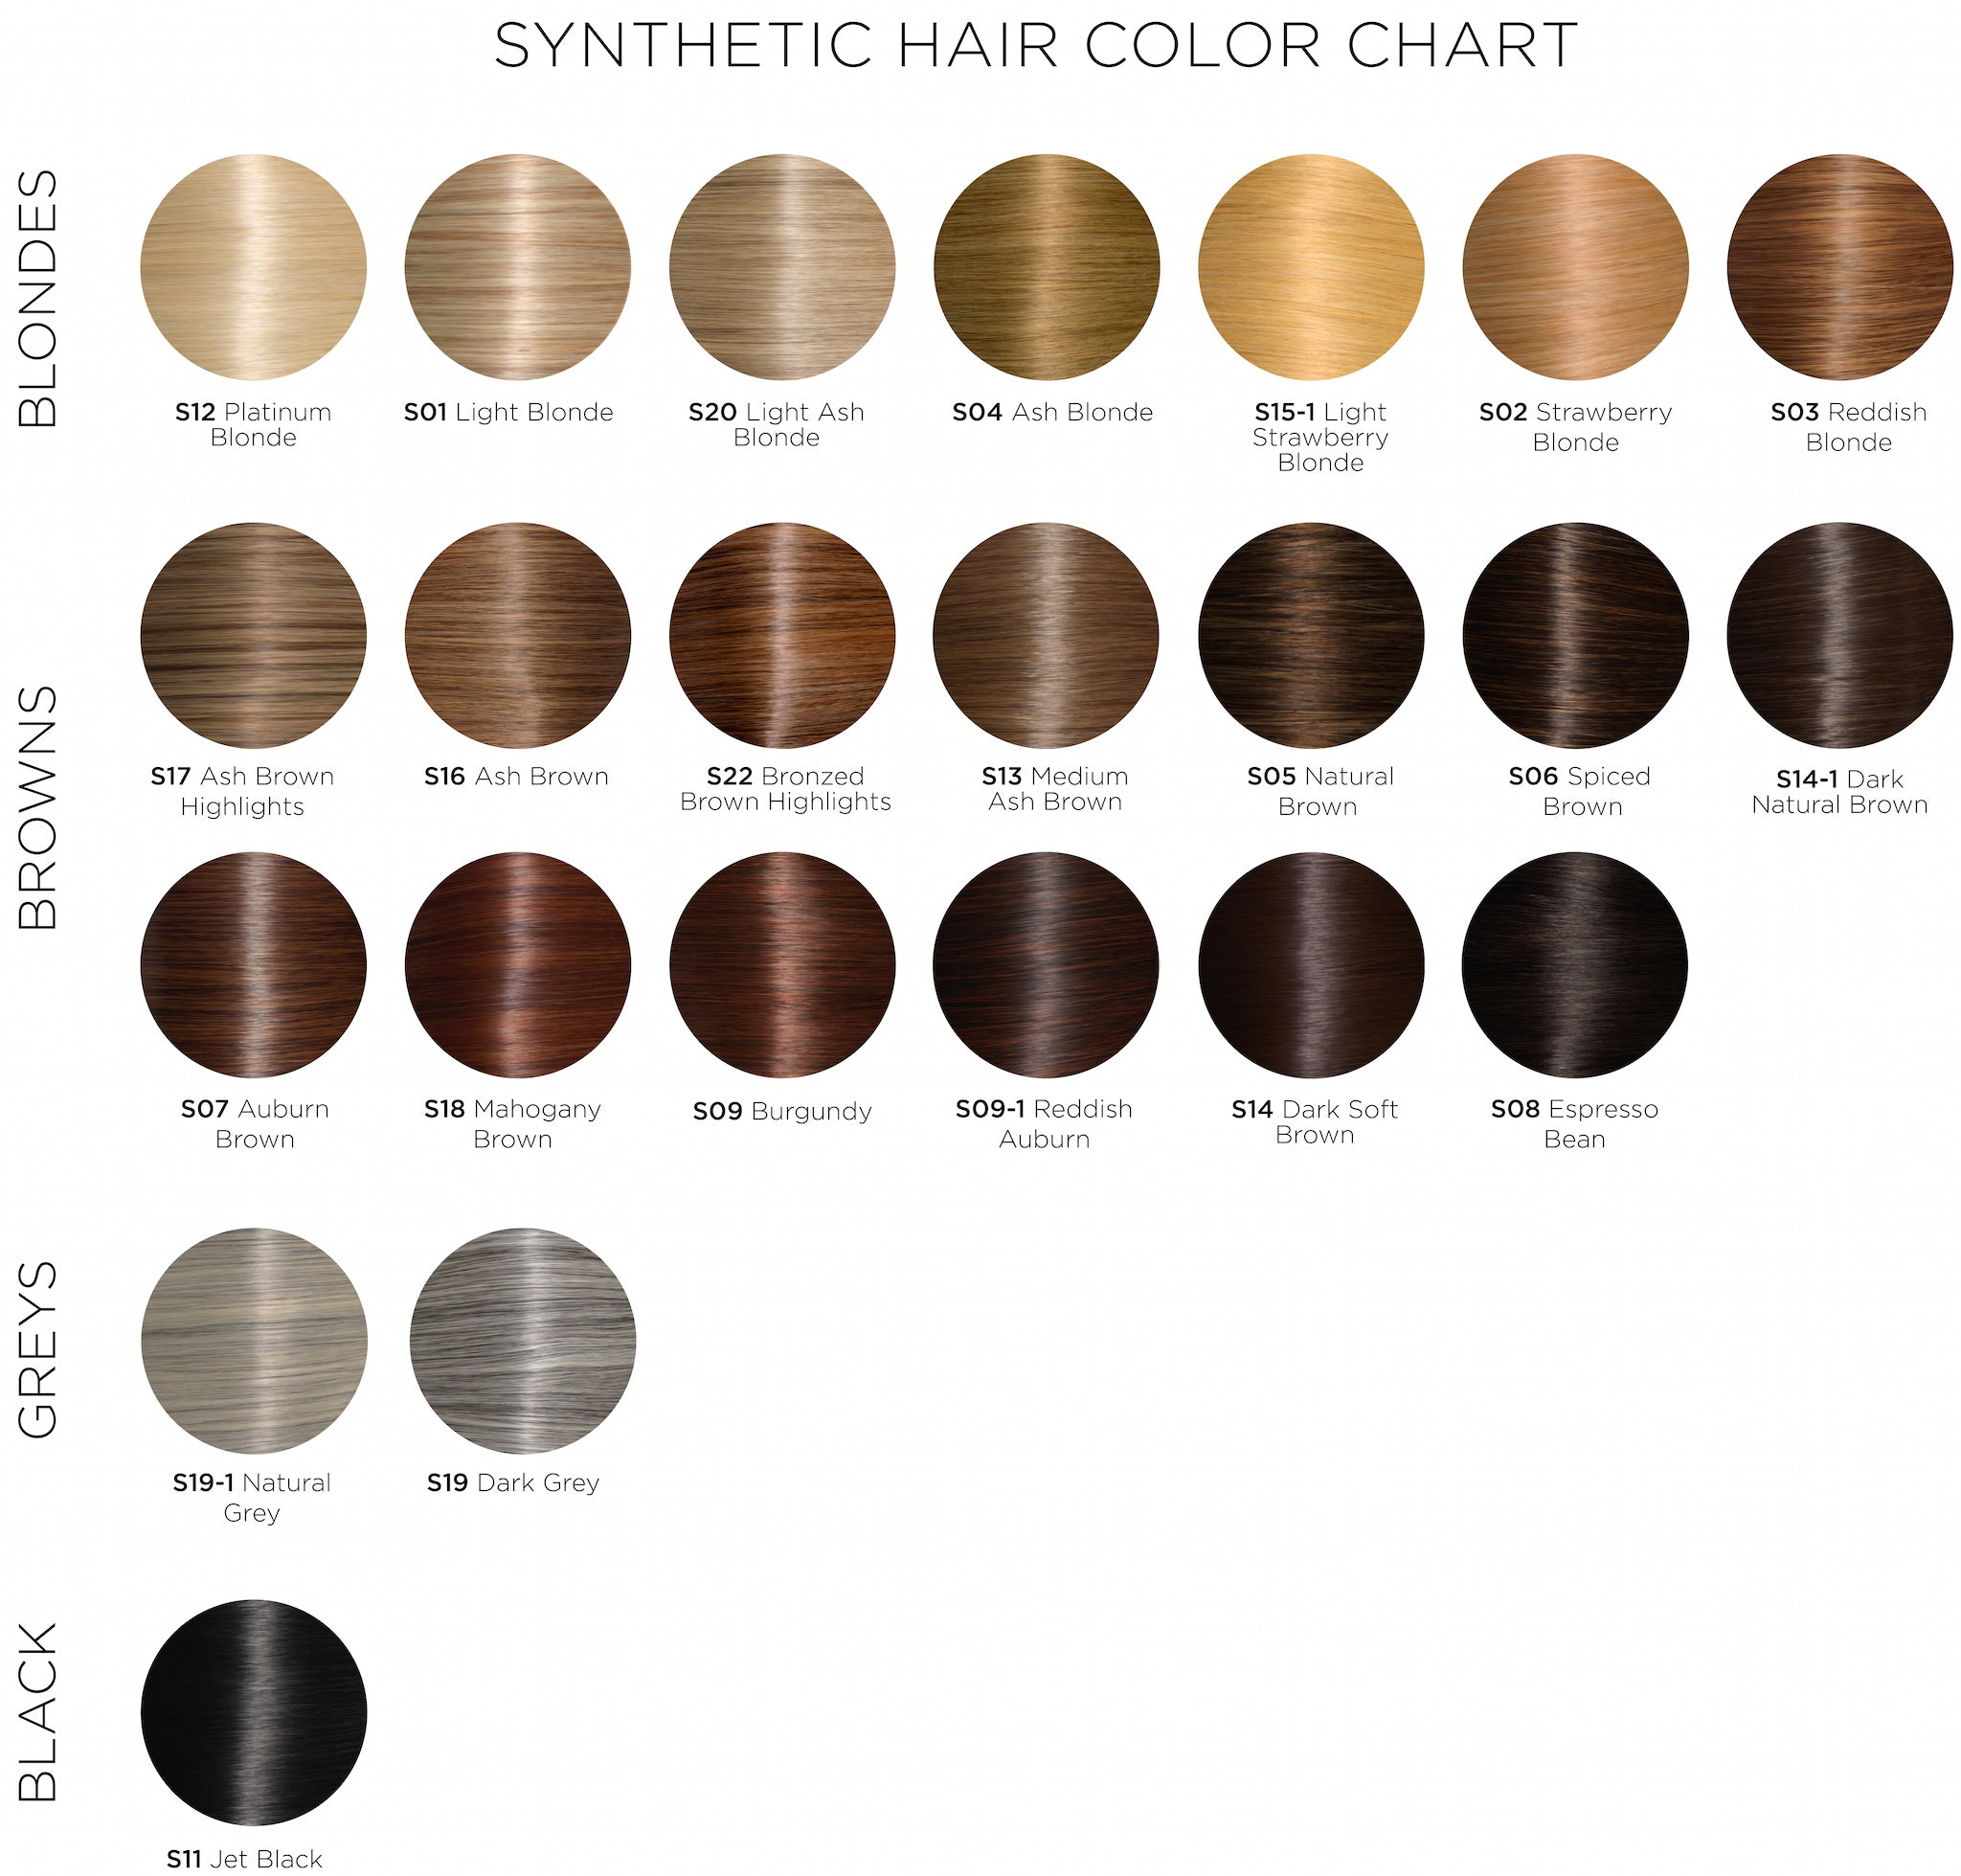 Soho hair extension color chart soho style soho hair extension color chart geenschuldenfo Image collections